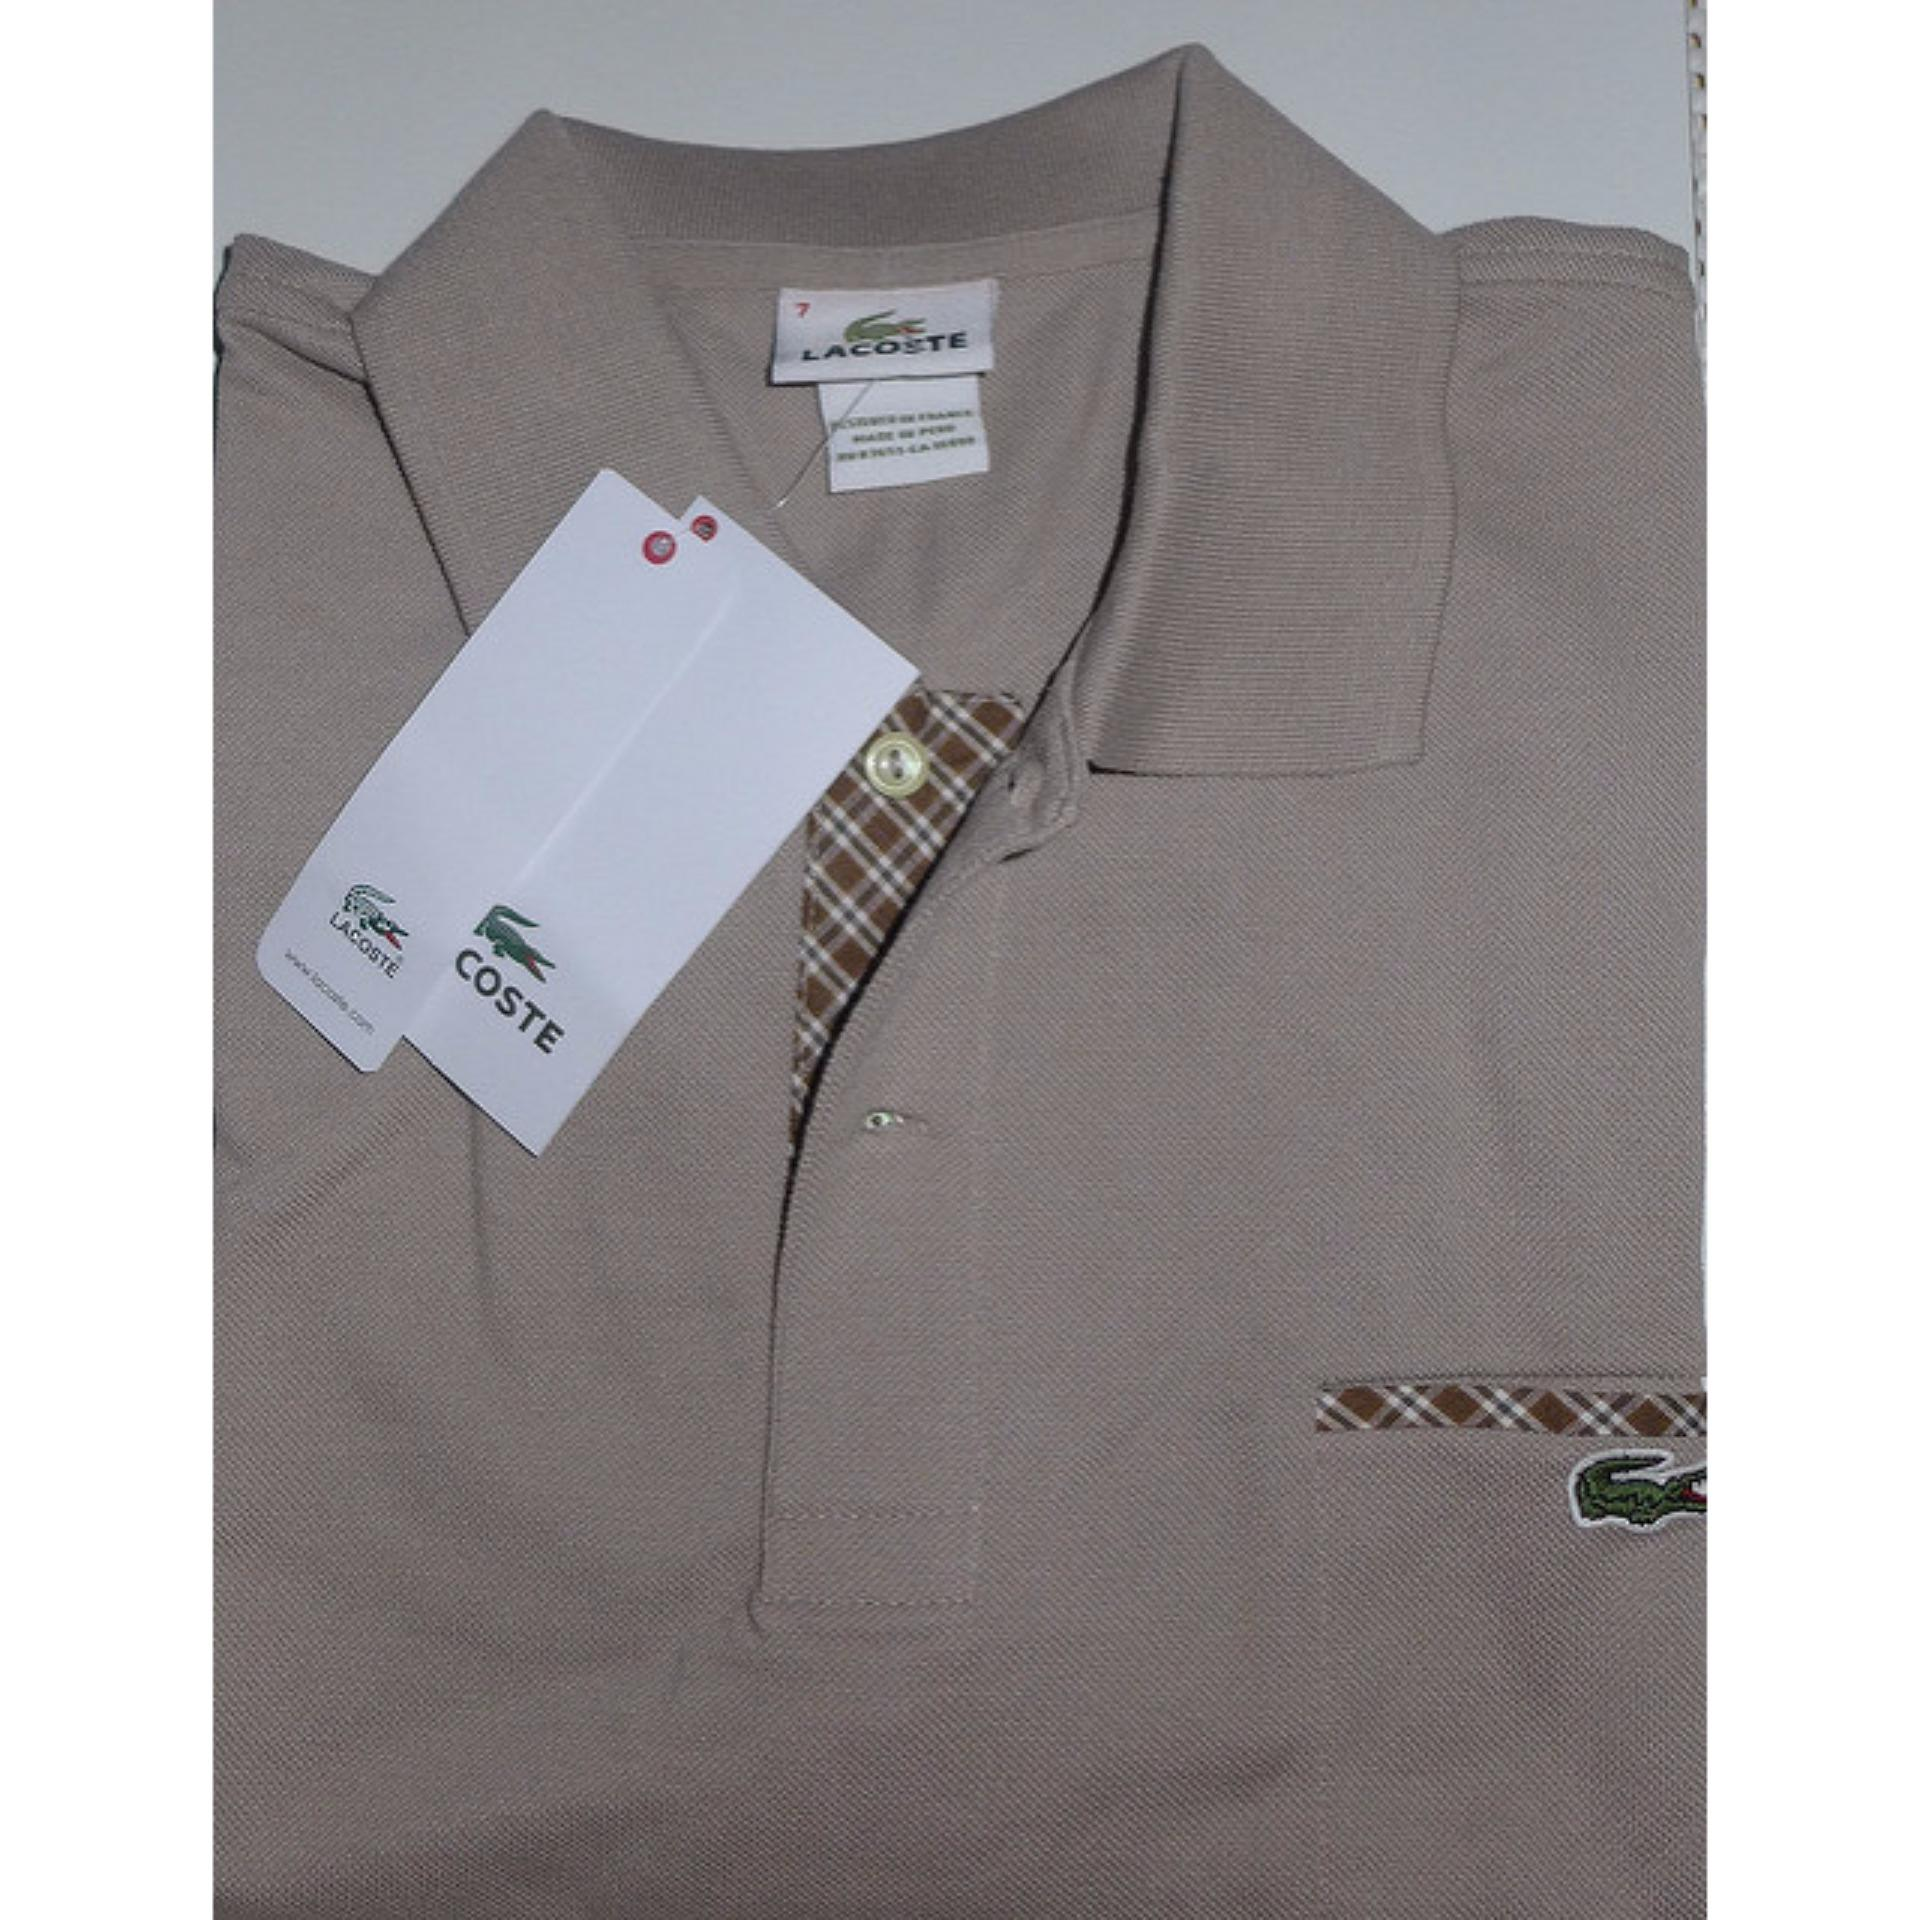 612548105 Lacoste Classic Polo Shirt Price Philippines – EDGE Engineering and ...